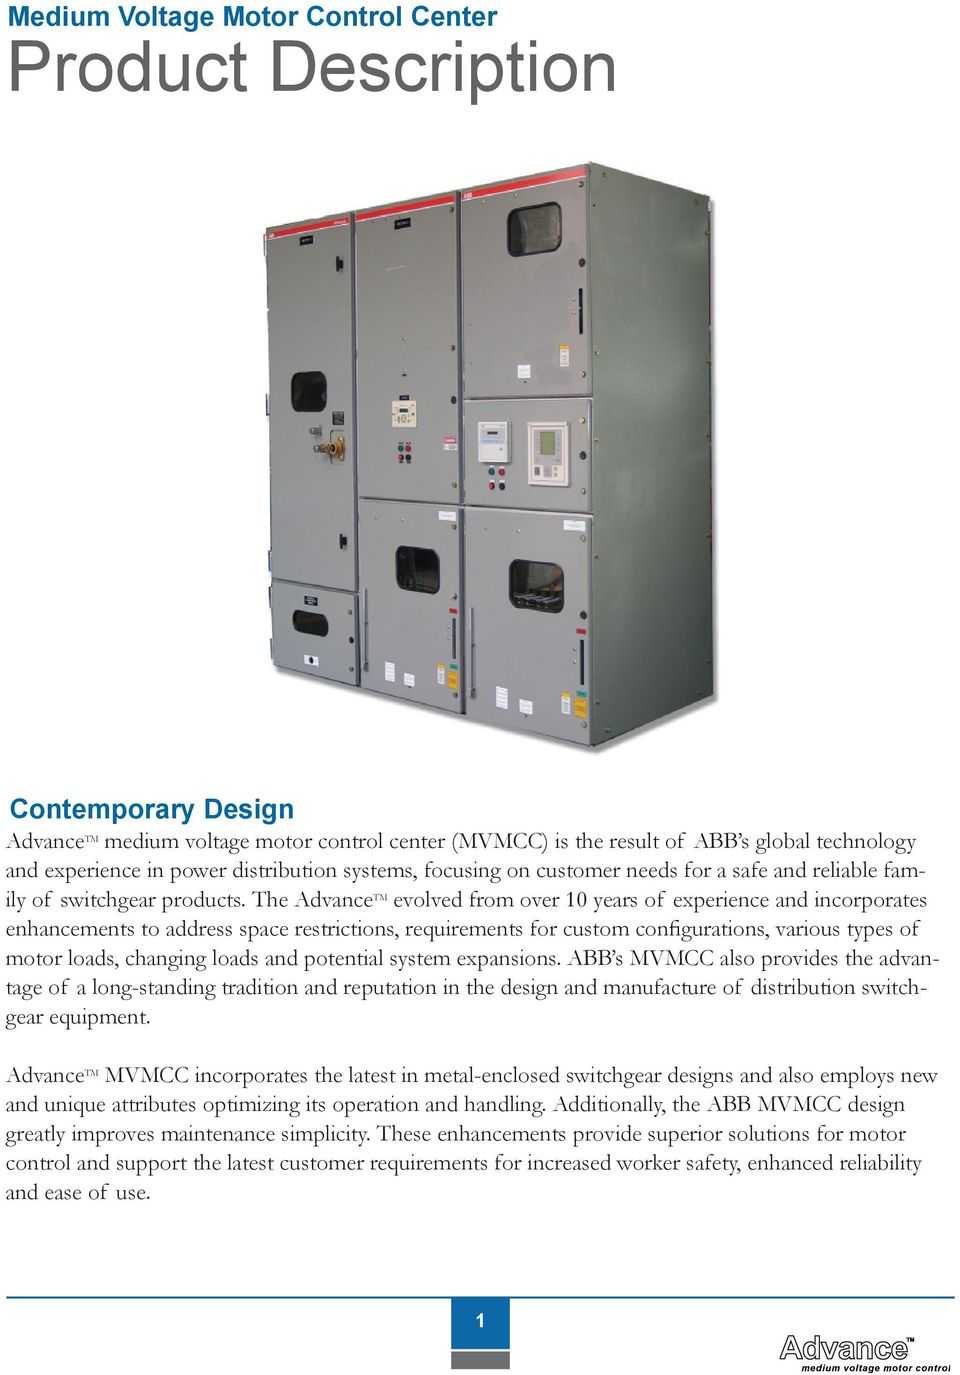 Medium Voltage Air Insulated Motor Control Featuring Advancetm Abb Solid State Relay Wiring Diagram The Advance Tm Evolved From Over 10 Years Of Experience And Incorporates Enhancements To Address Space